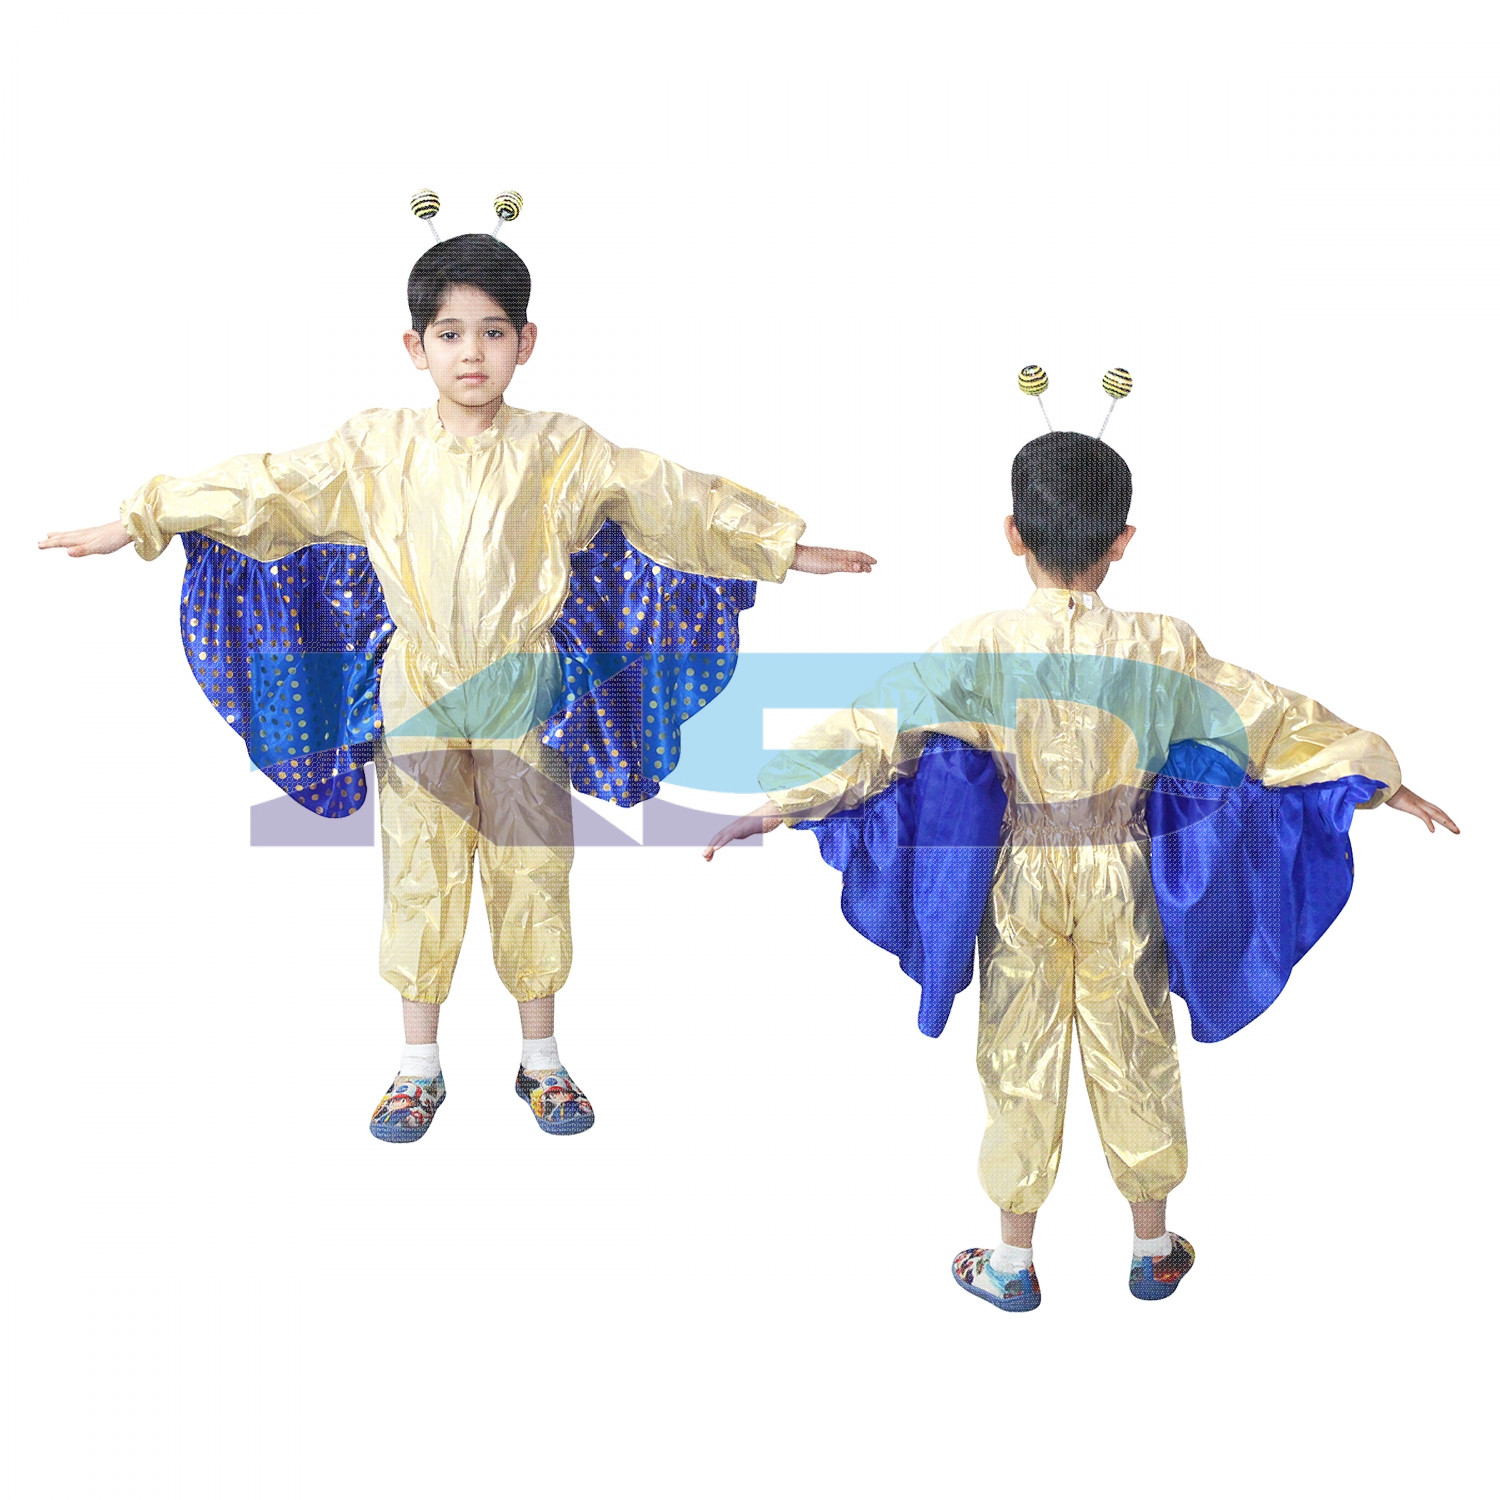 Butterfly Boy fancy dress for kids,Insect Costume for School Annual Function/Theme Party/Competition/Stage Shows Dress